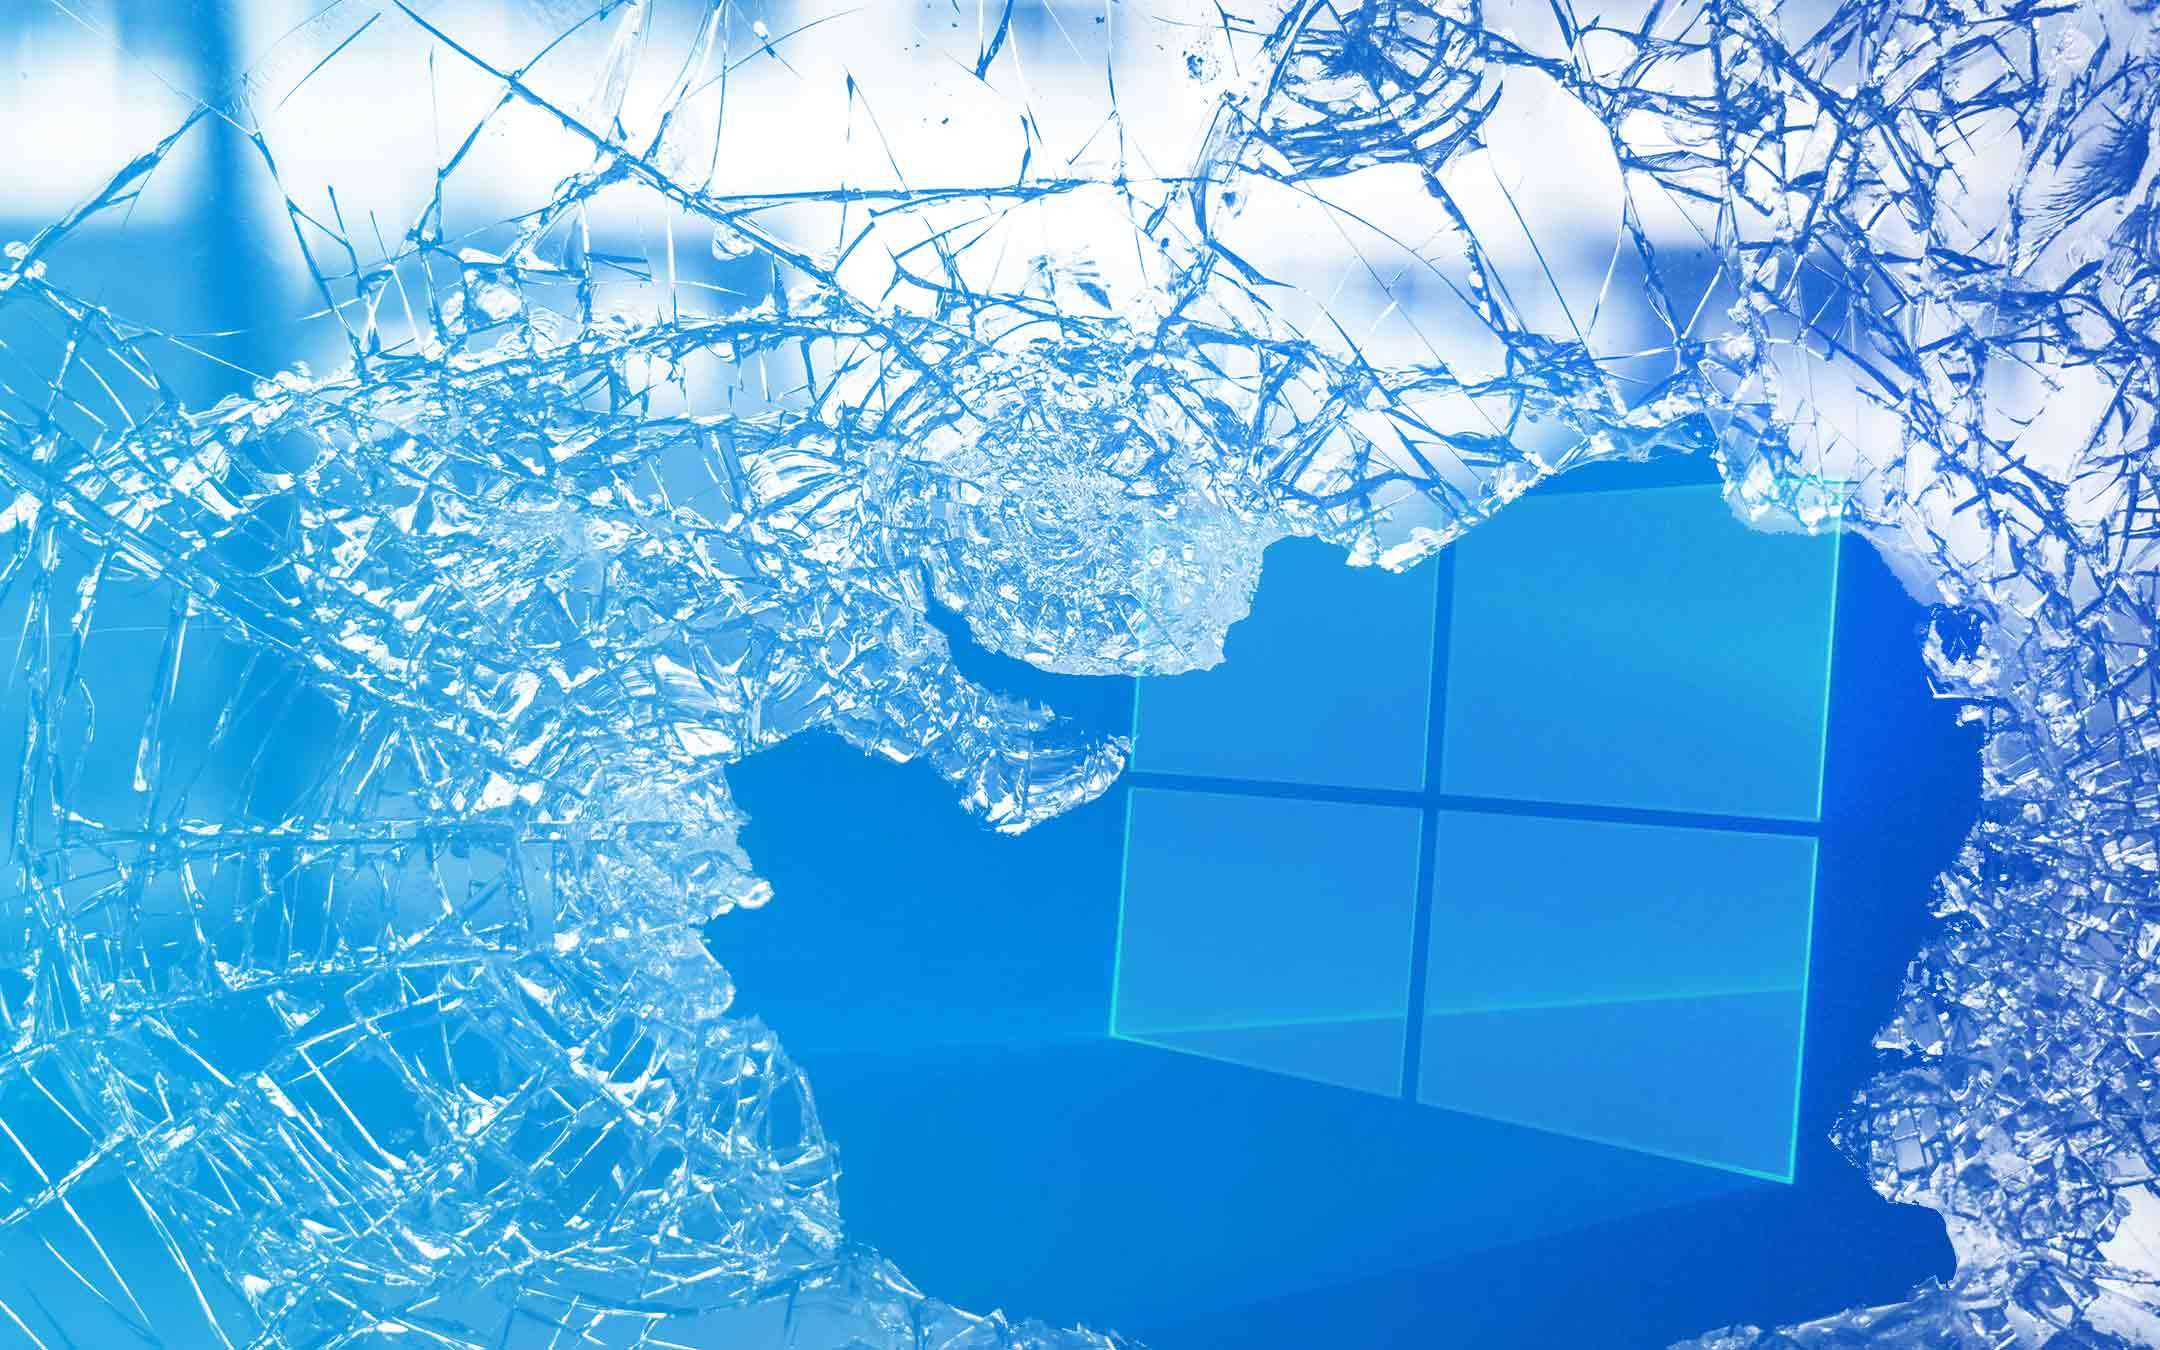 Windows 10: Microsoft confirms bugs, BSoD and reboot